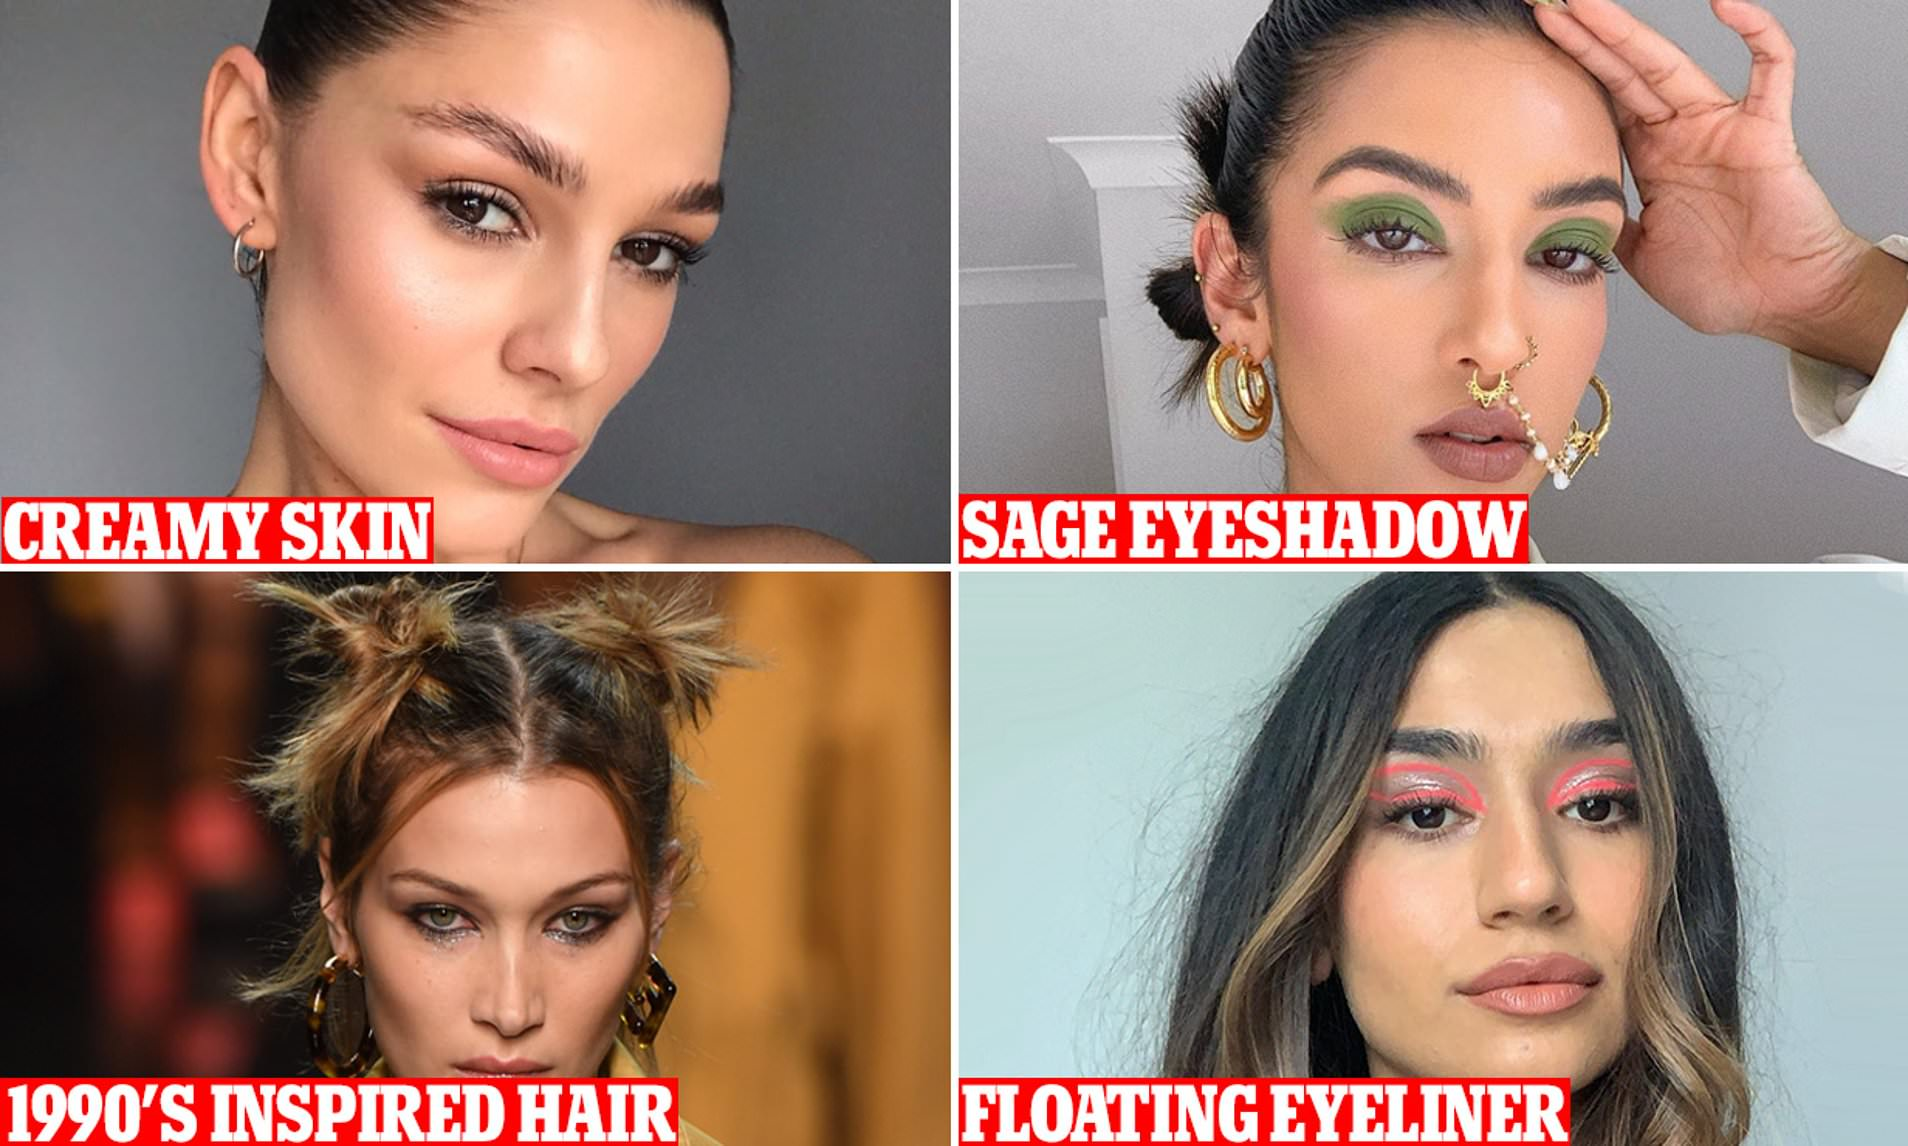 Mecca Hottest Beauty Trends Of 2020 Revealed Including Floating